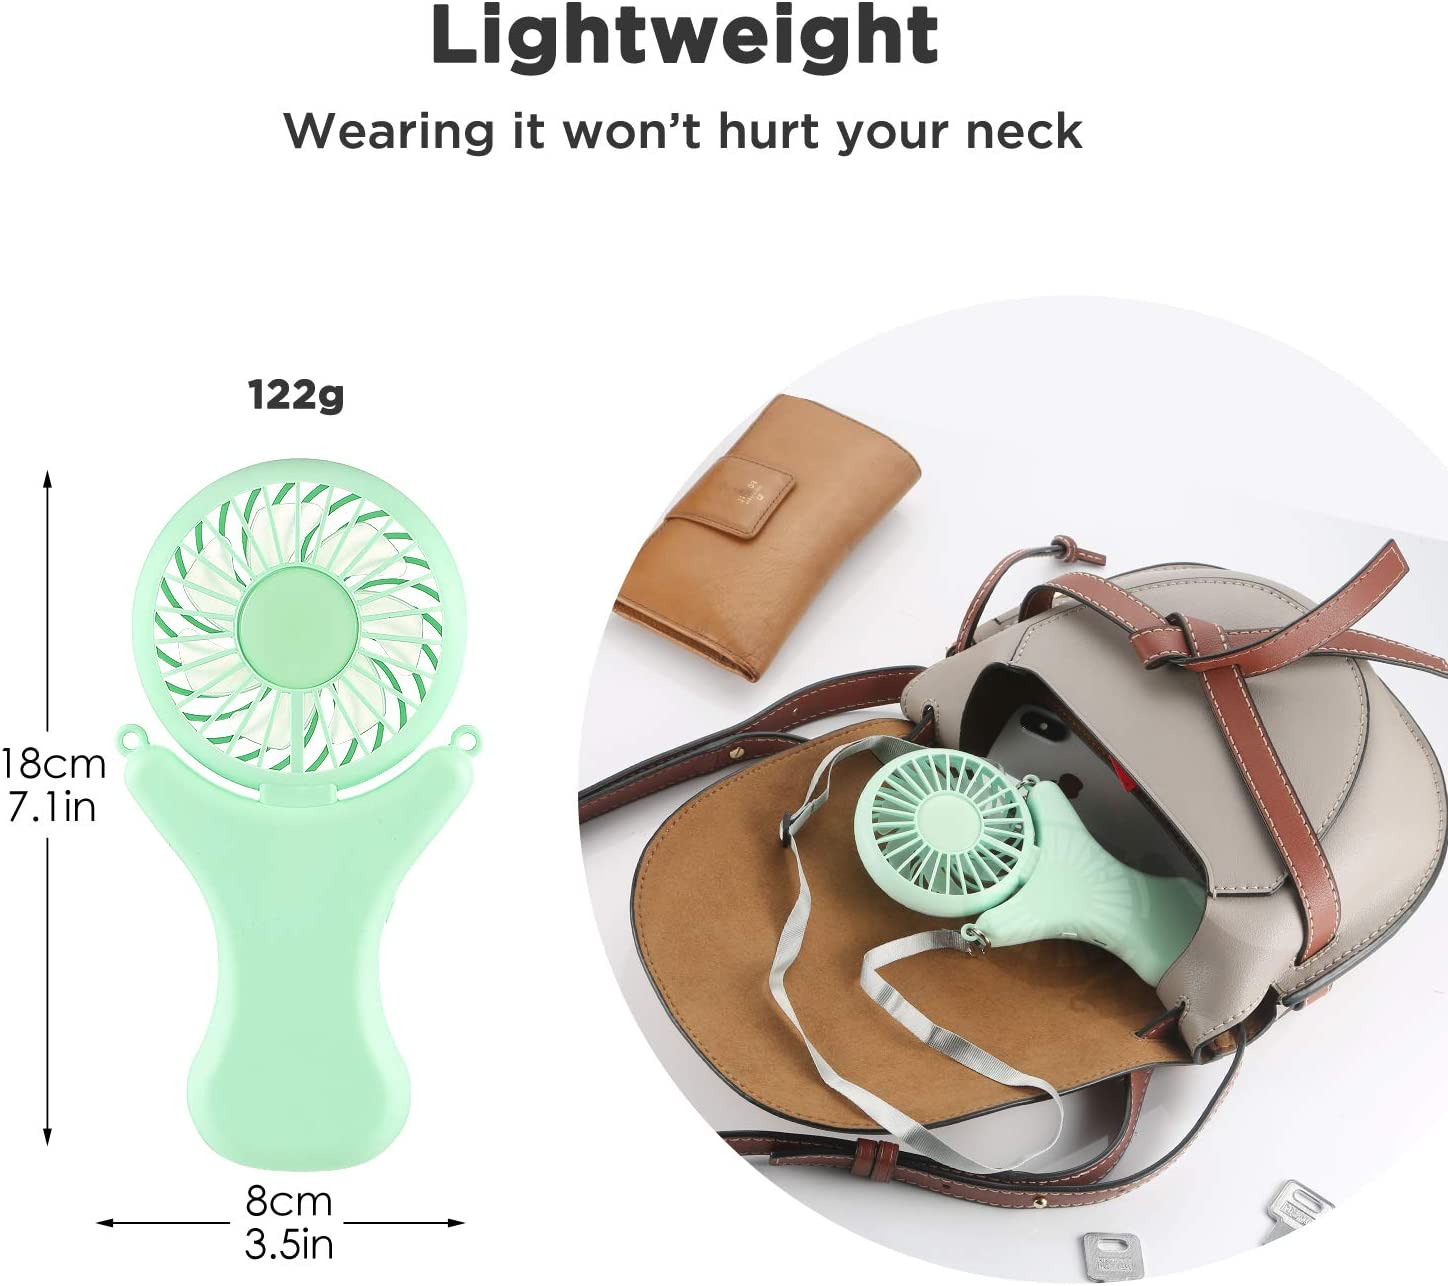 OUTXE Necklace Fan 108/° Rotating Free Adjustment Black,2000mAh Travel Handheld Fan for Outdoor Event Mini Portable USB Personal Fan 3 Setting Cooling Folding Electric Fan Rechargeable Battery